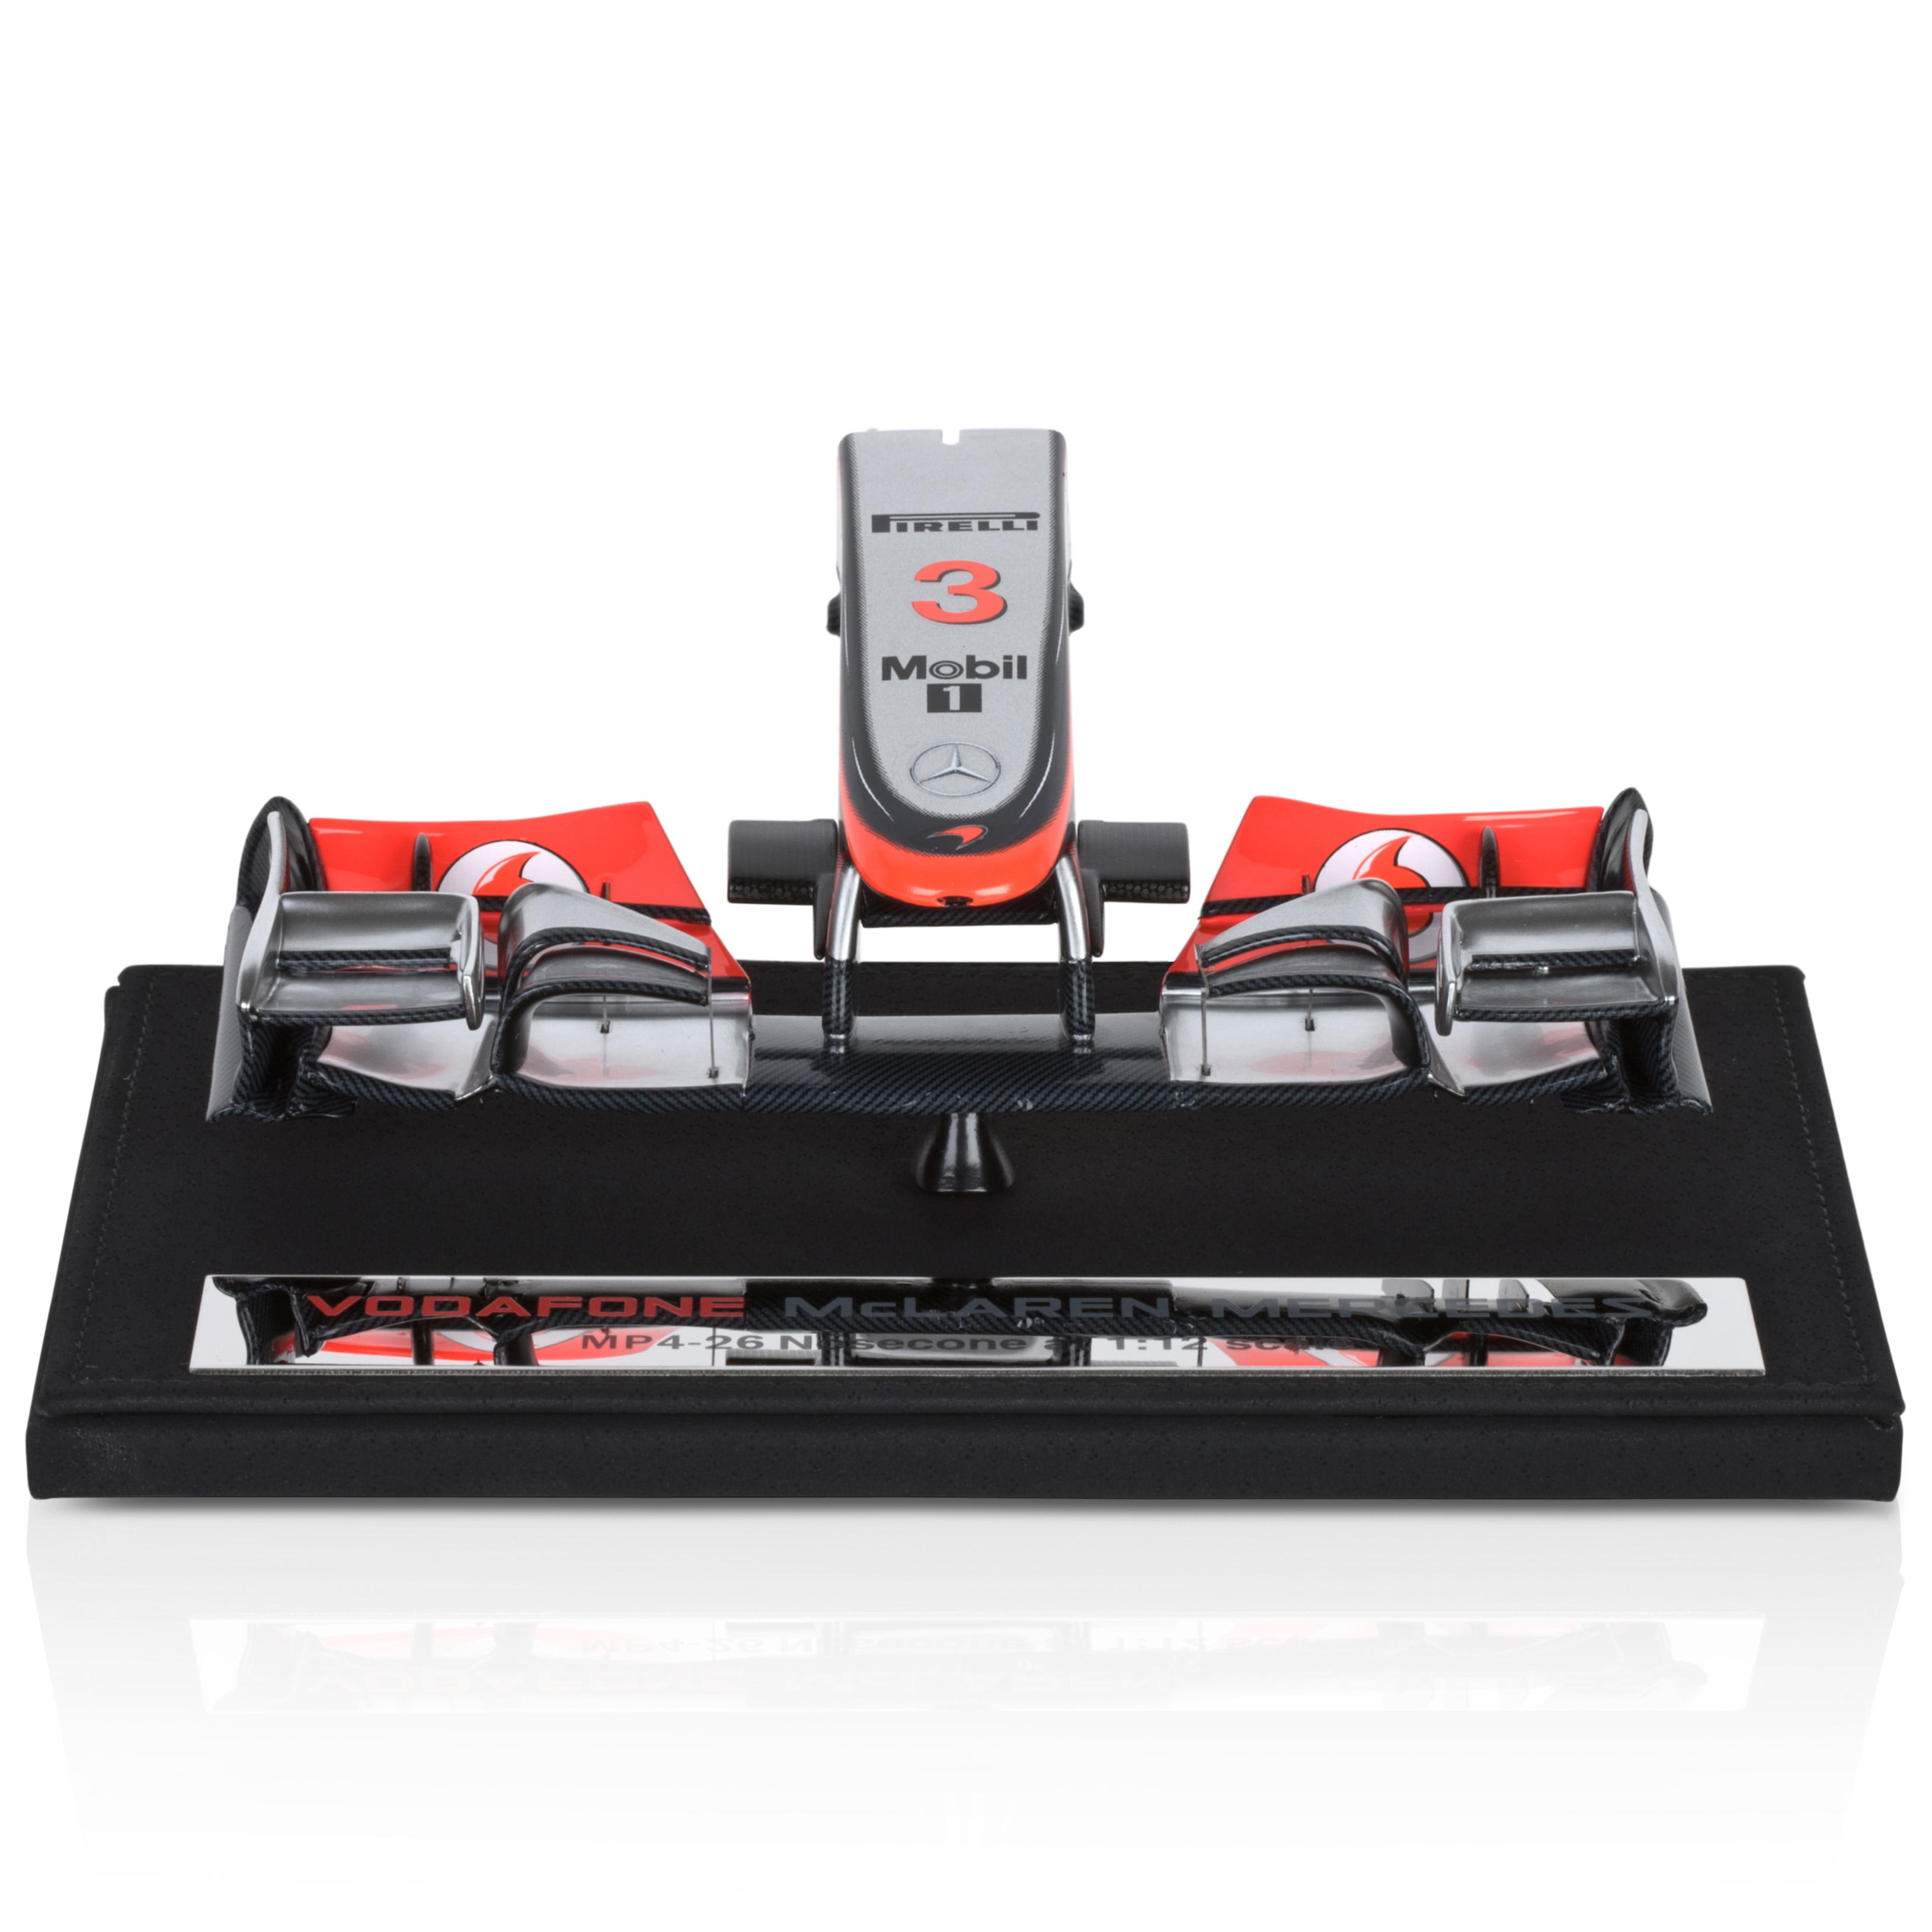 Vodafone McLaren Mercedes MP4-26 Lewis Hamilton 1:12 Scale Nosecone